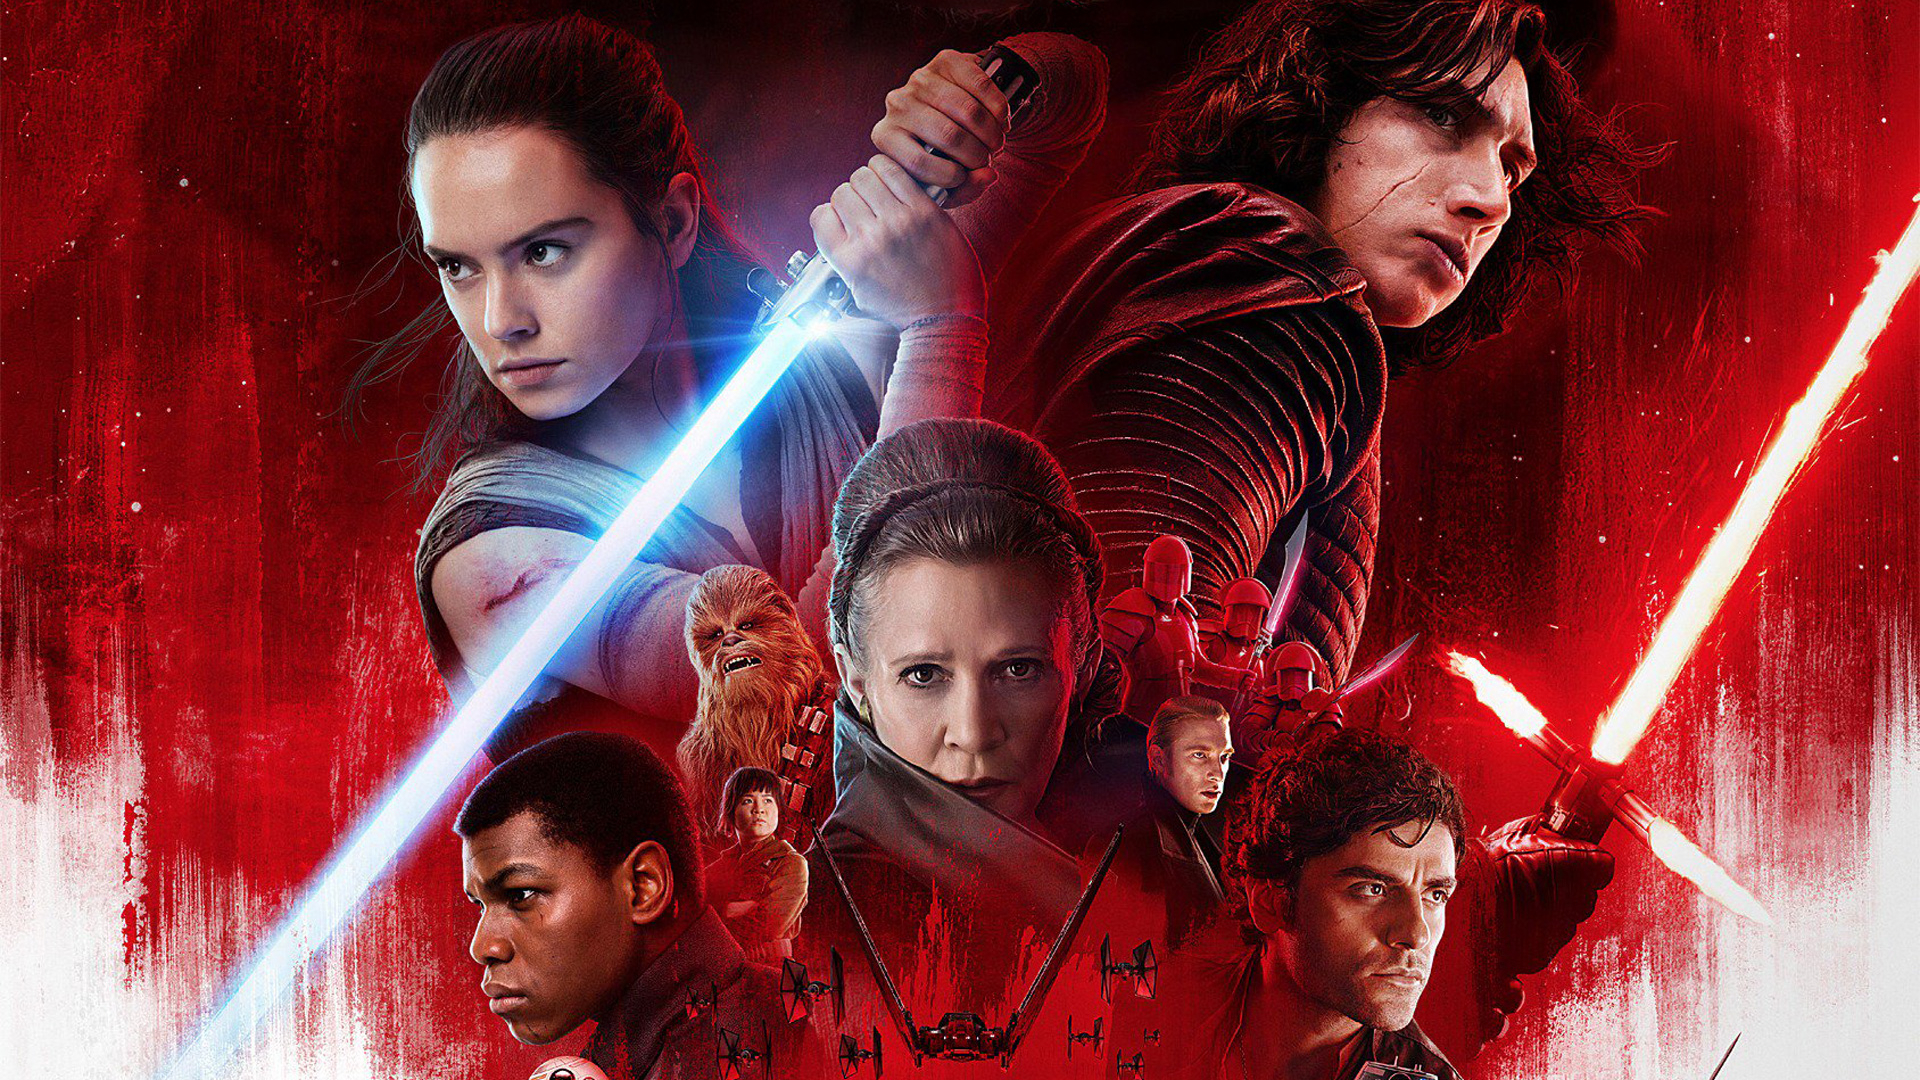 1920x1080 Star Wars The Last Jedi Poster 1080p Laptop Full Hd Wallpaper Hd Movies 4k Wallpapers Images Photos And Background